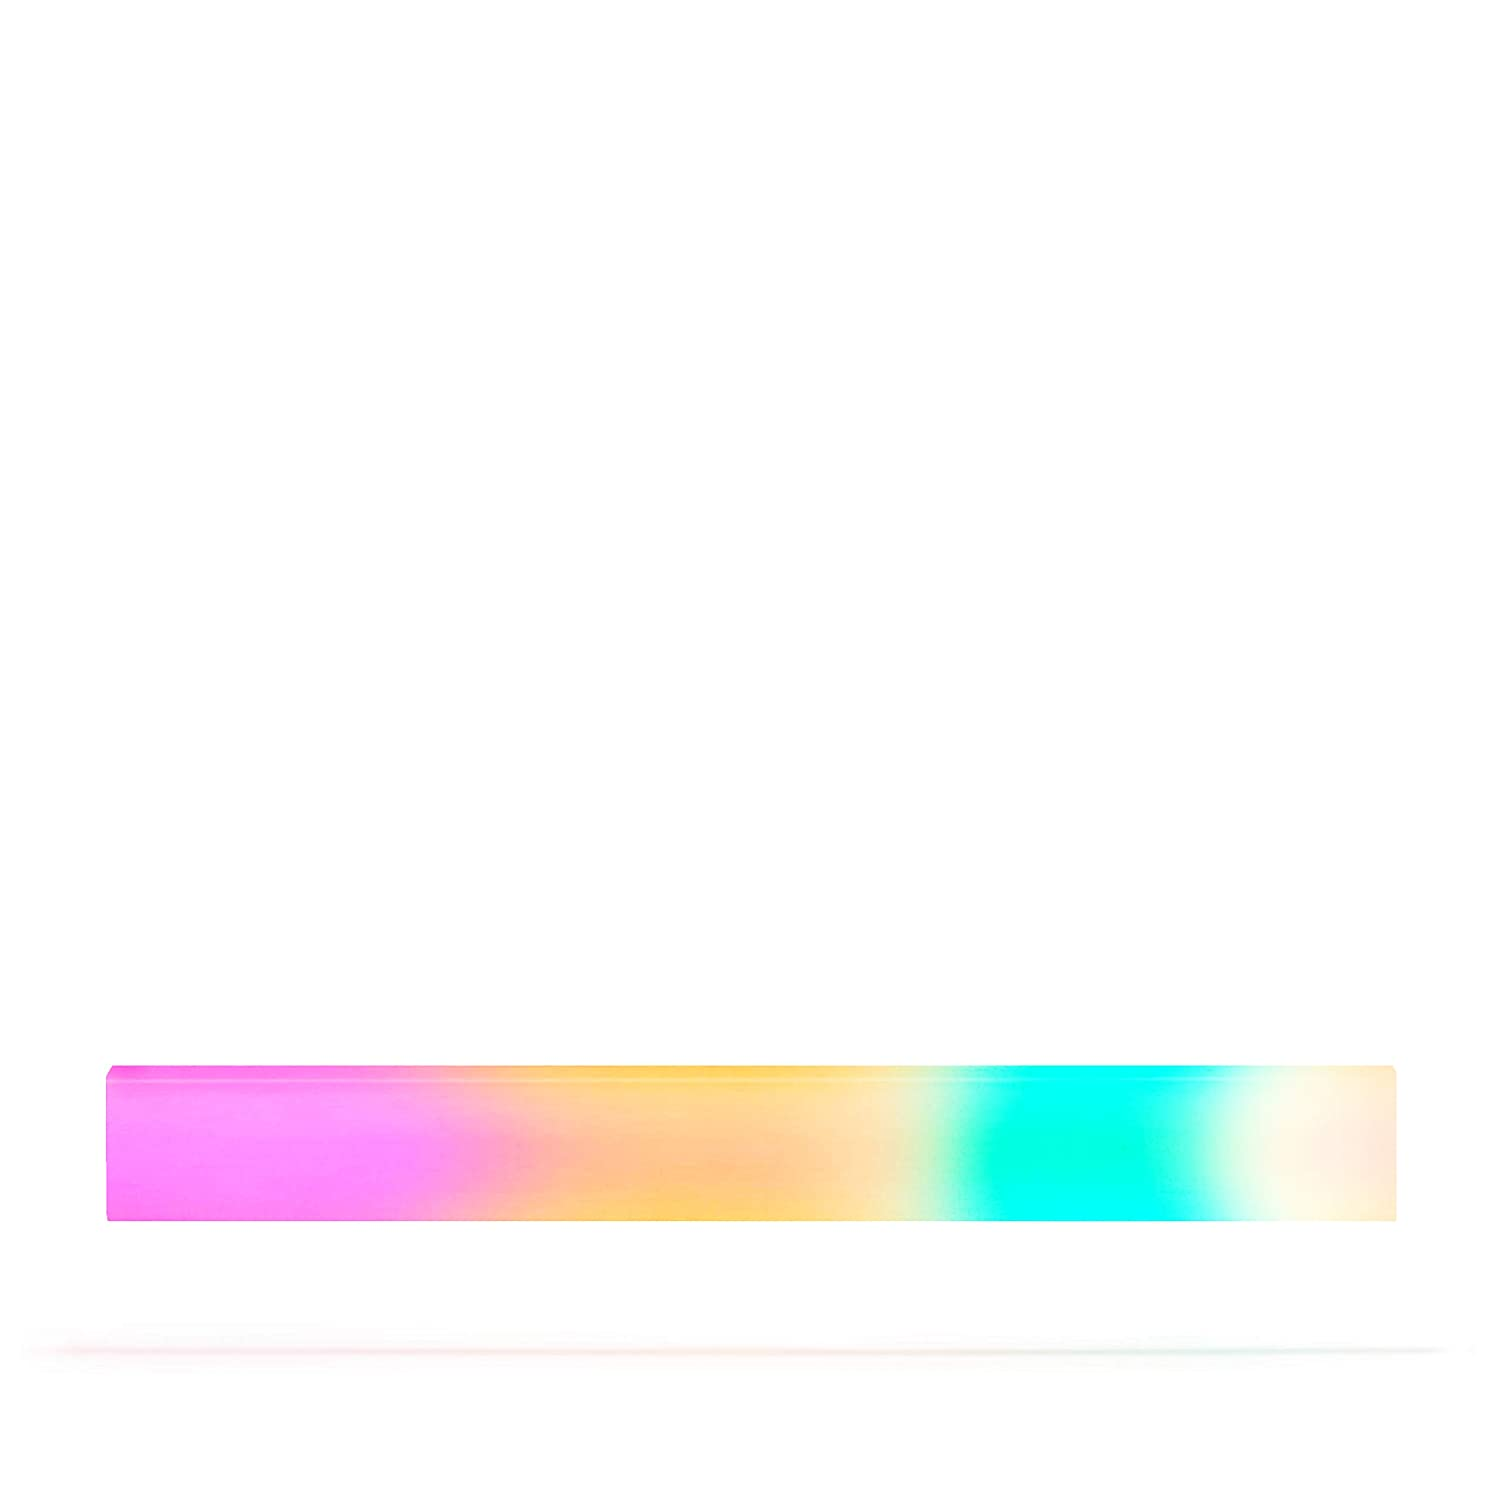 LIFX Beam Seamless Light Module, Adjustable, Multicolor, Dimmable, No Hub Required, Works with Alexa, Apple HomeKit and the Google Assistant, Pack of 6 Beams and One Corner Kit